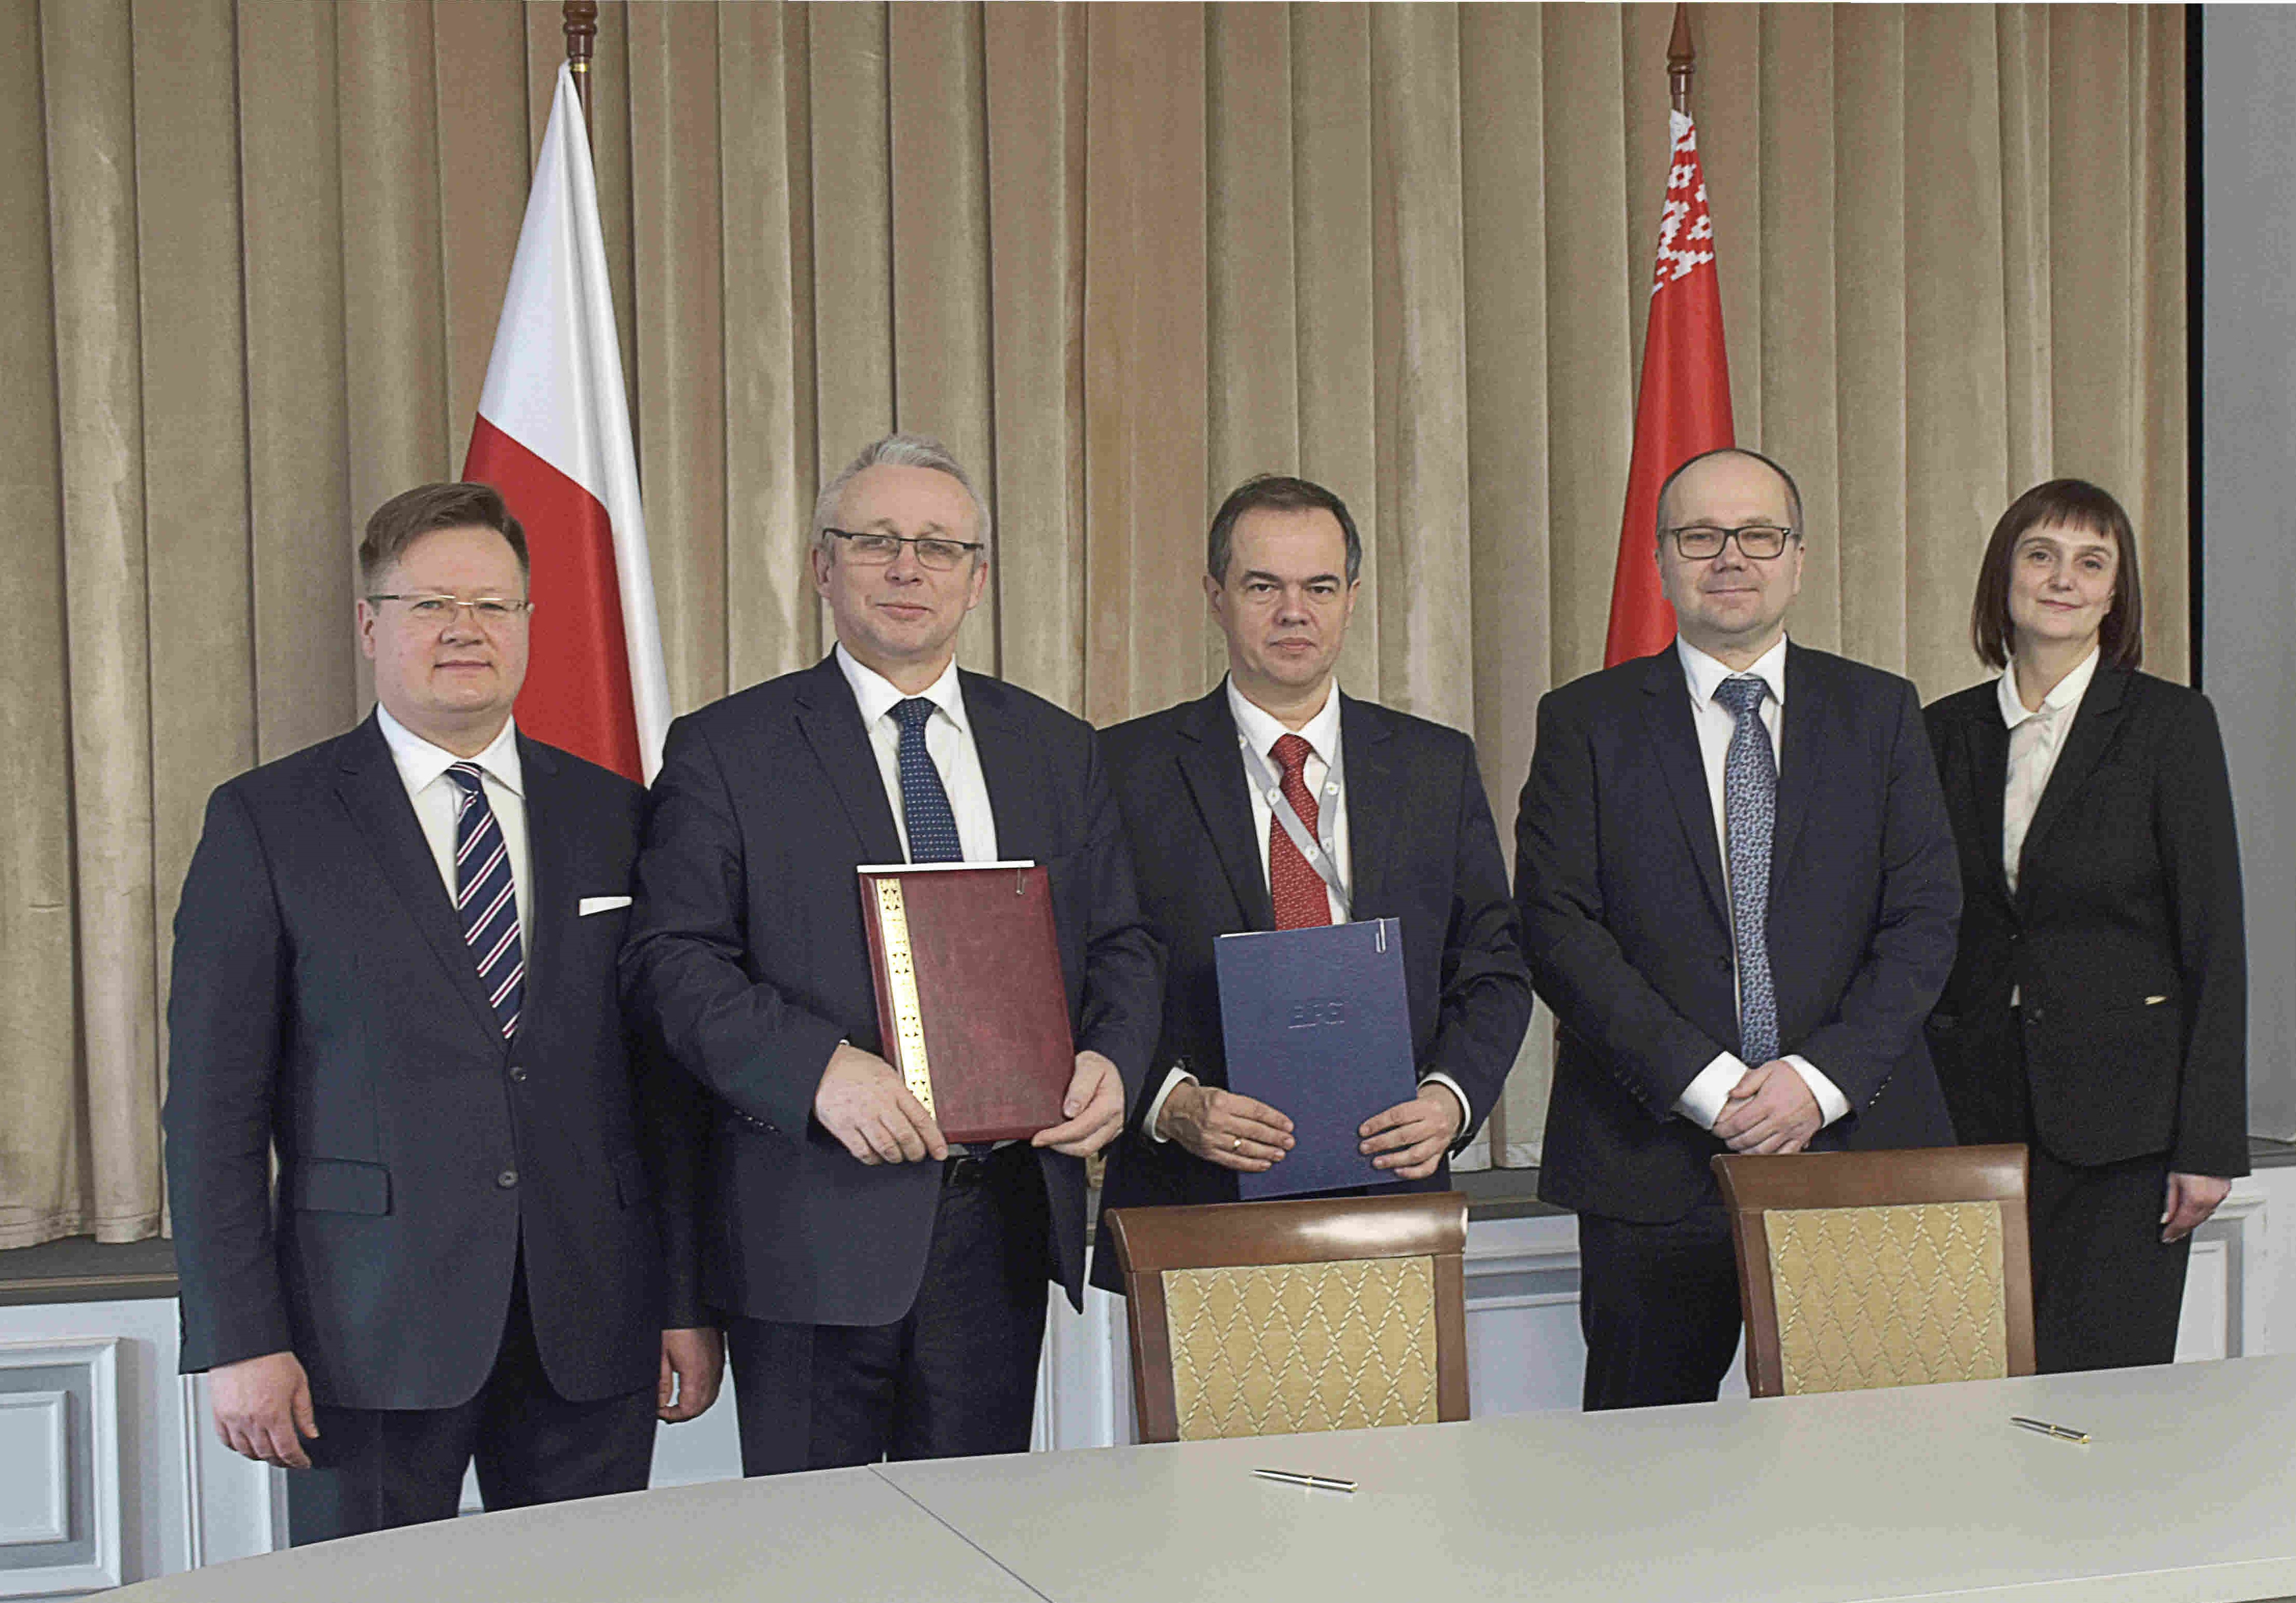 Signing of Memorandum of Understanding and Cooperation with the Bank Guarantee Fund of the Republic of Poland